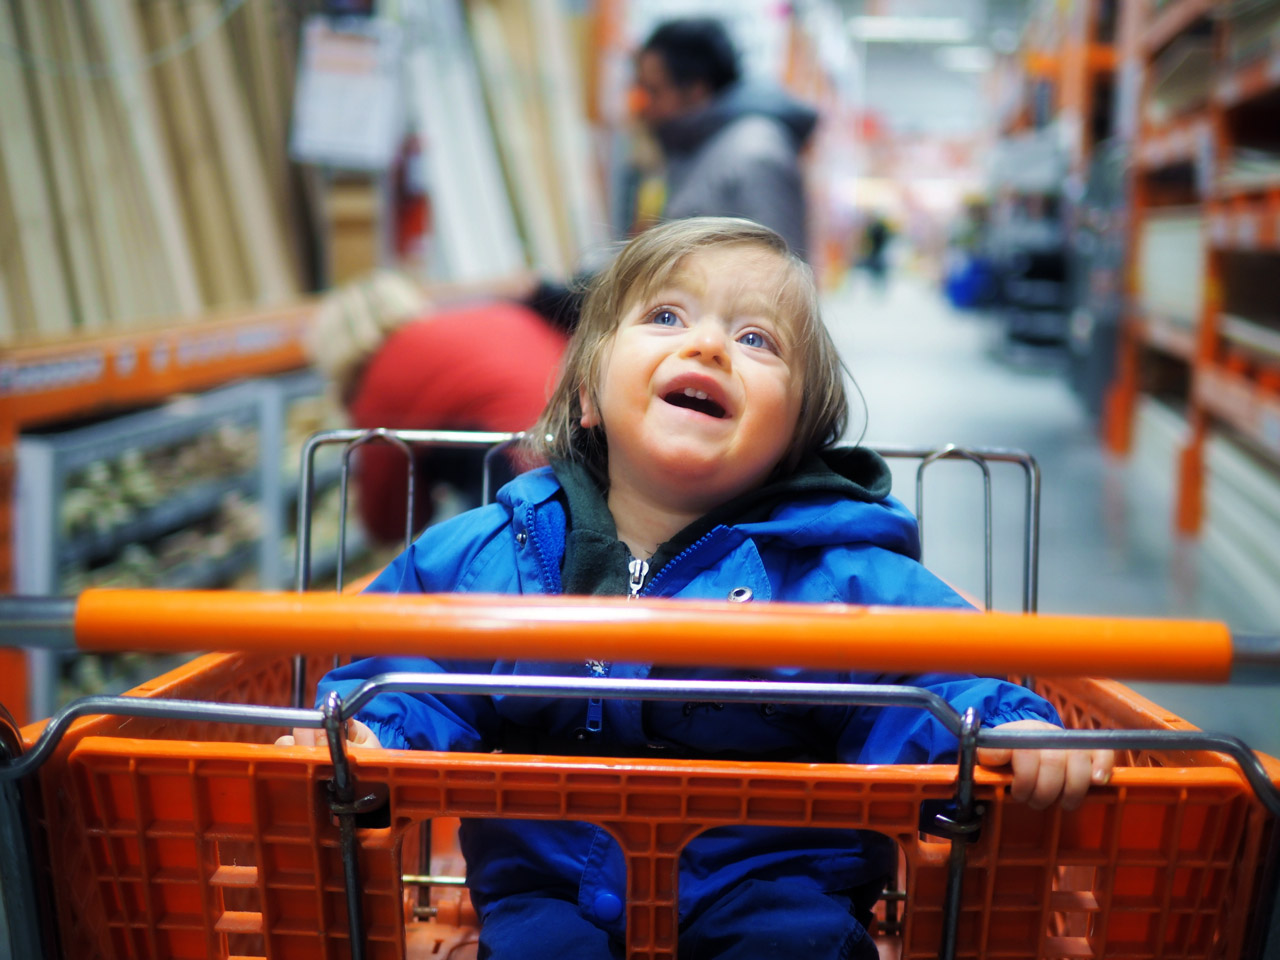 Boo crying in Home Depot